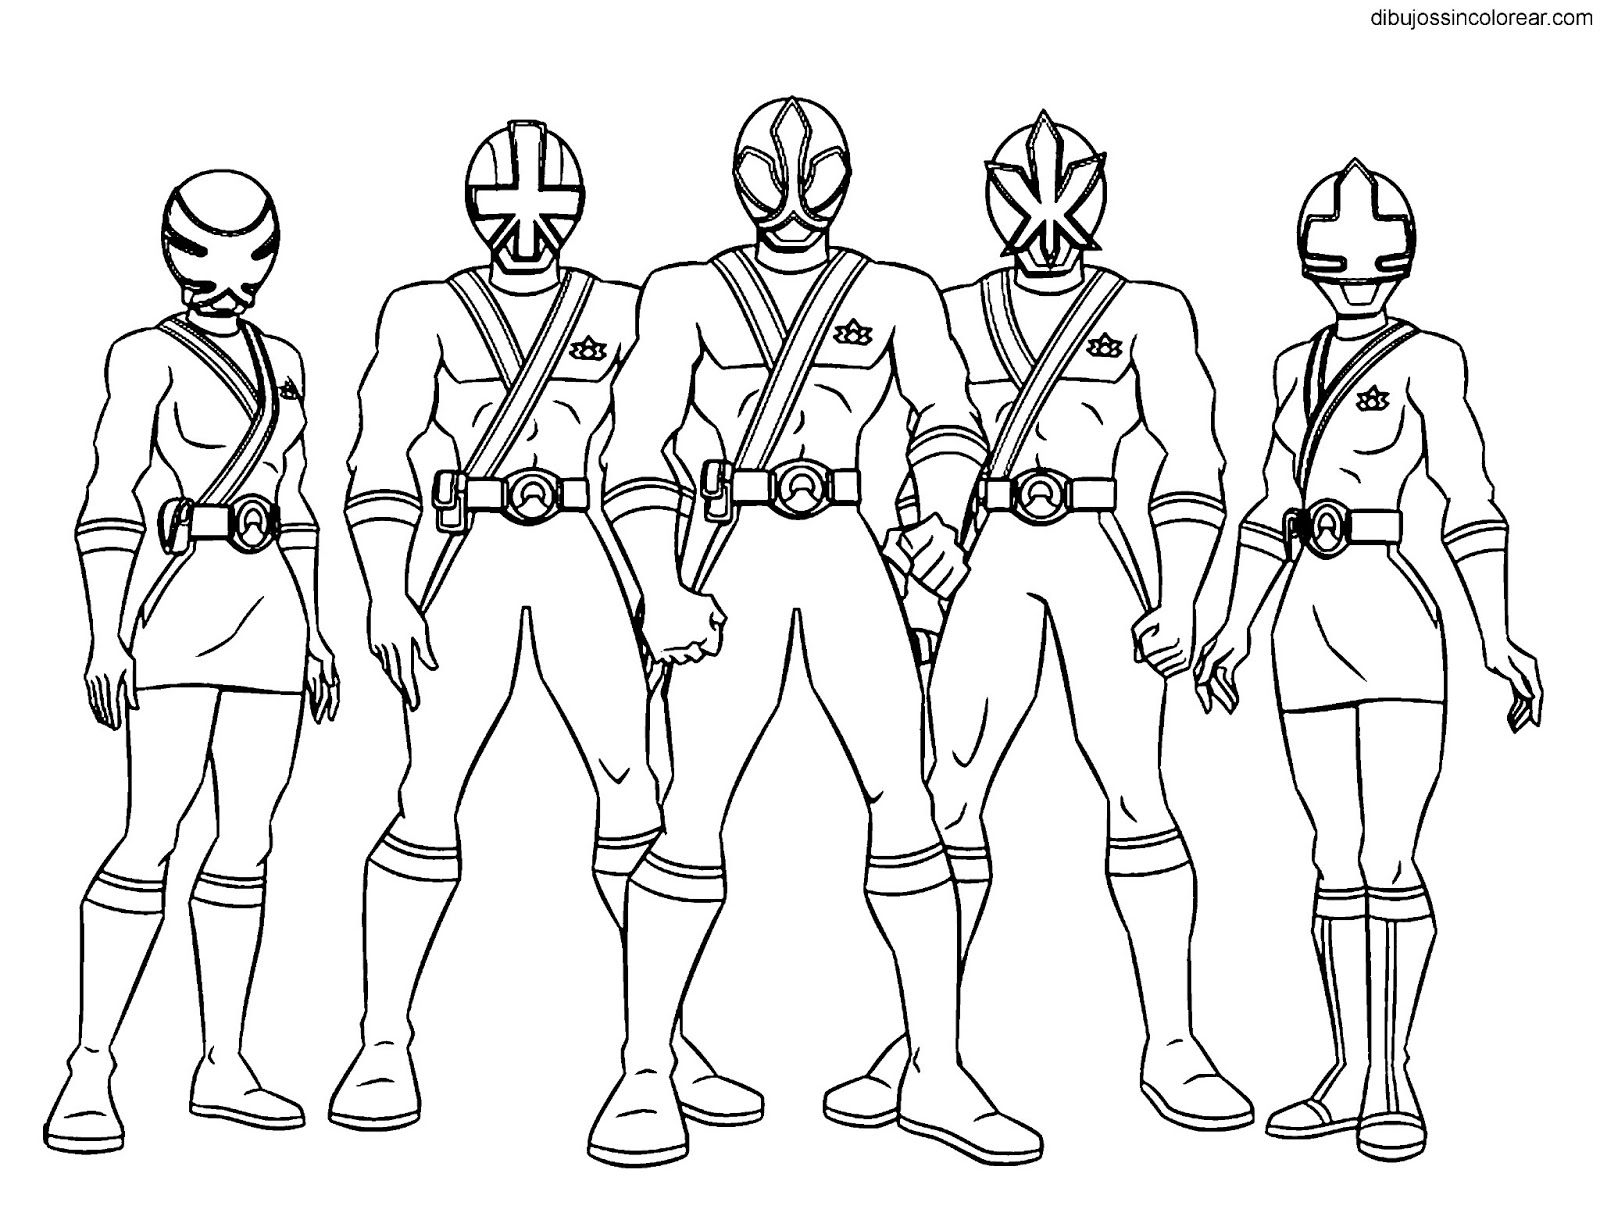 Drawling Of The Power Rangers Dibujos De Personajes De Power